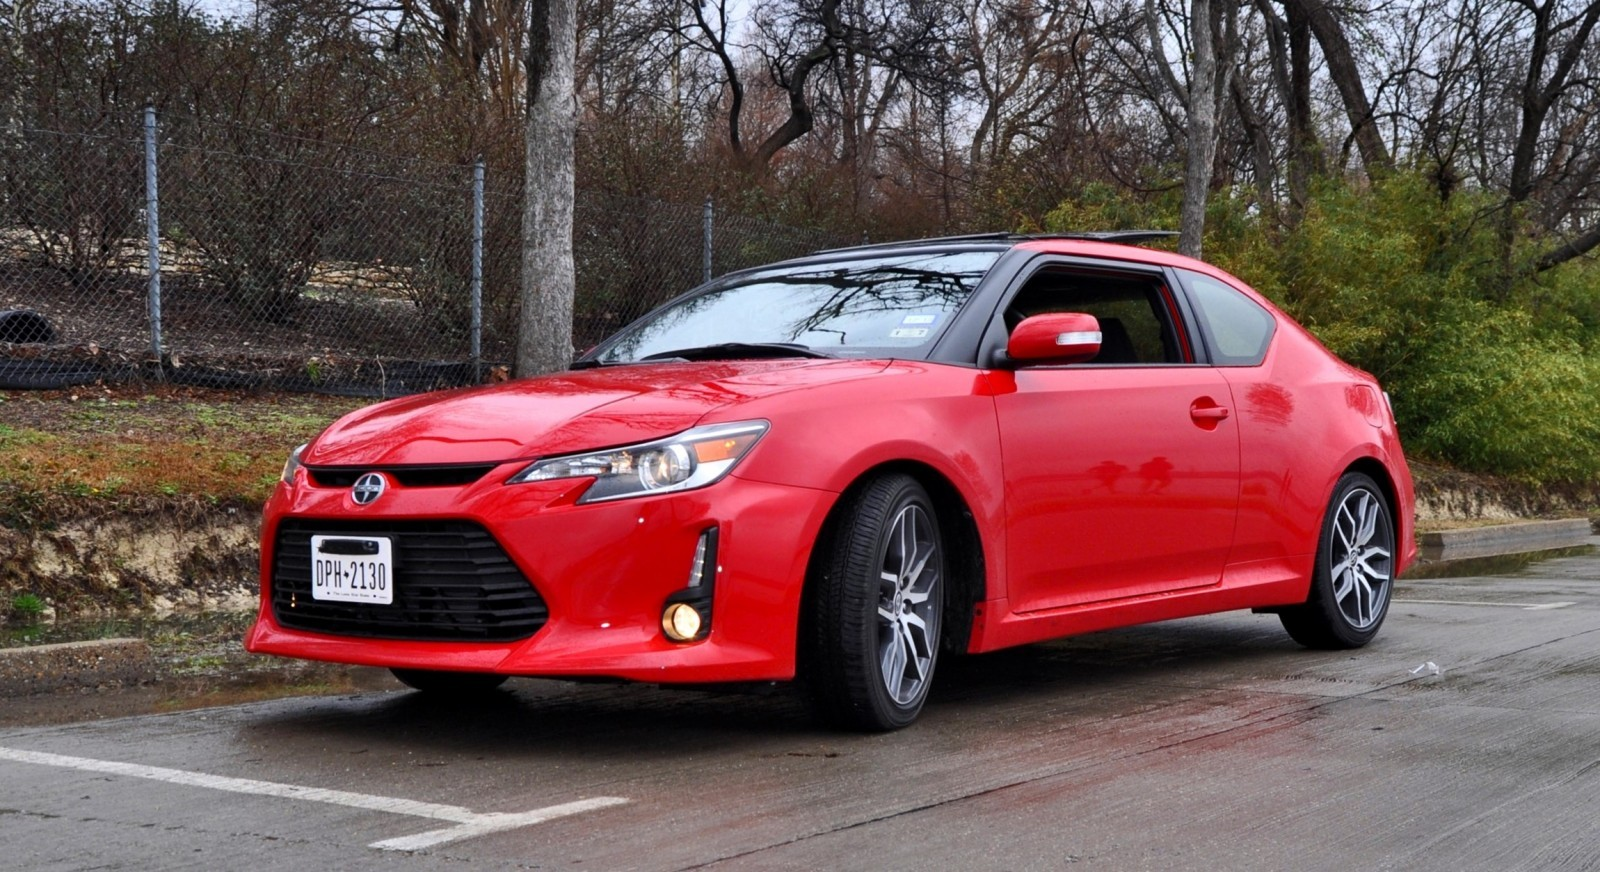 Road Test Review - 2015 Scion tC 6-Speed With TRD Performance Parts 22